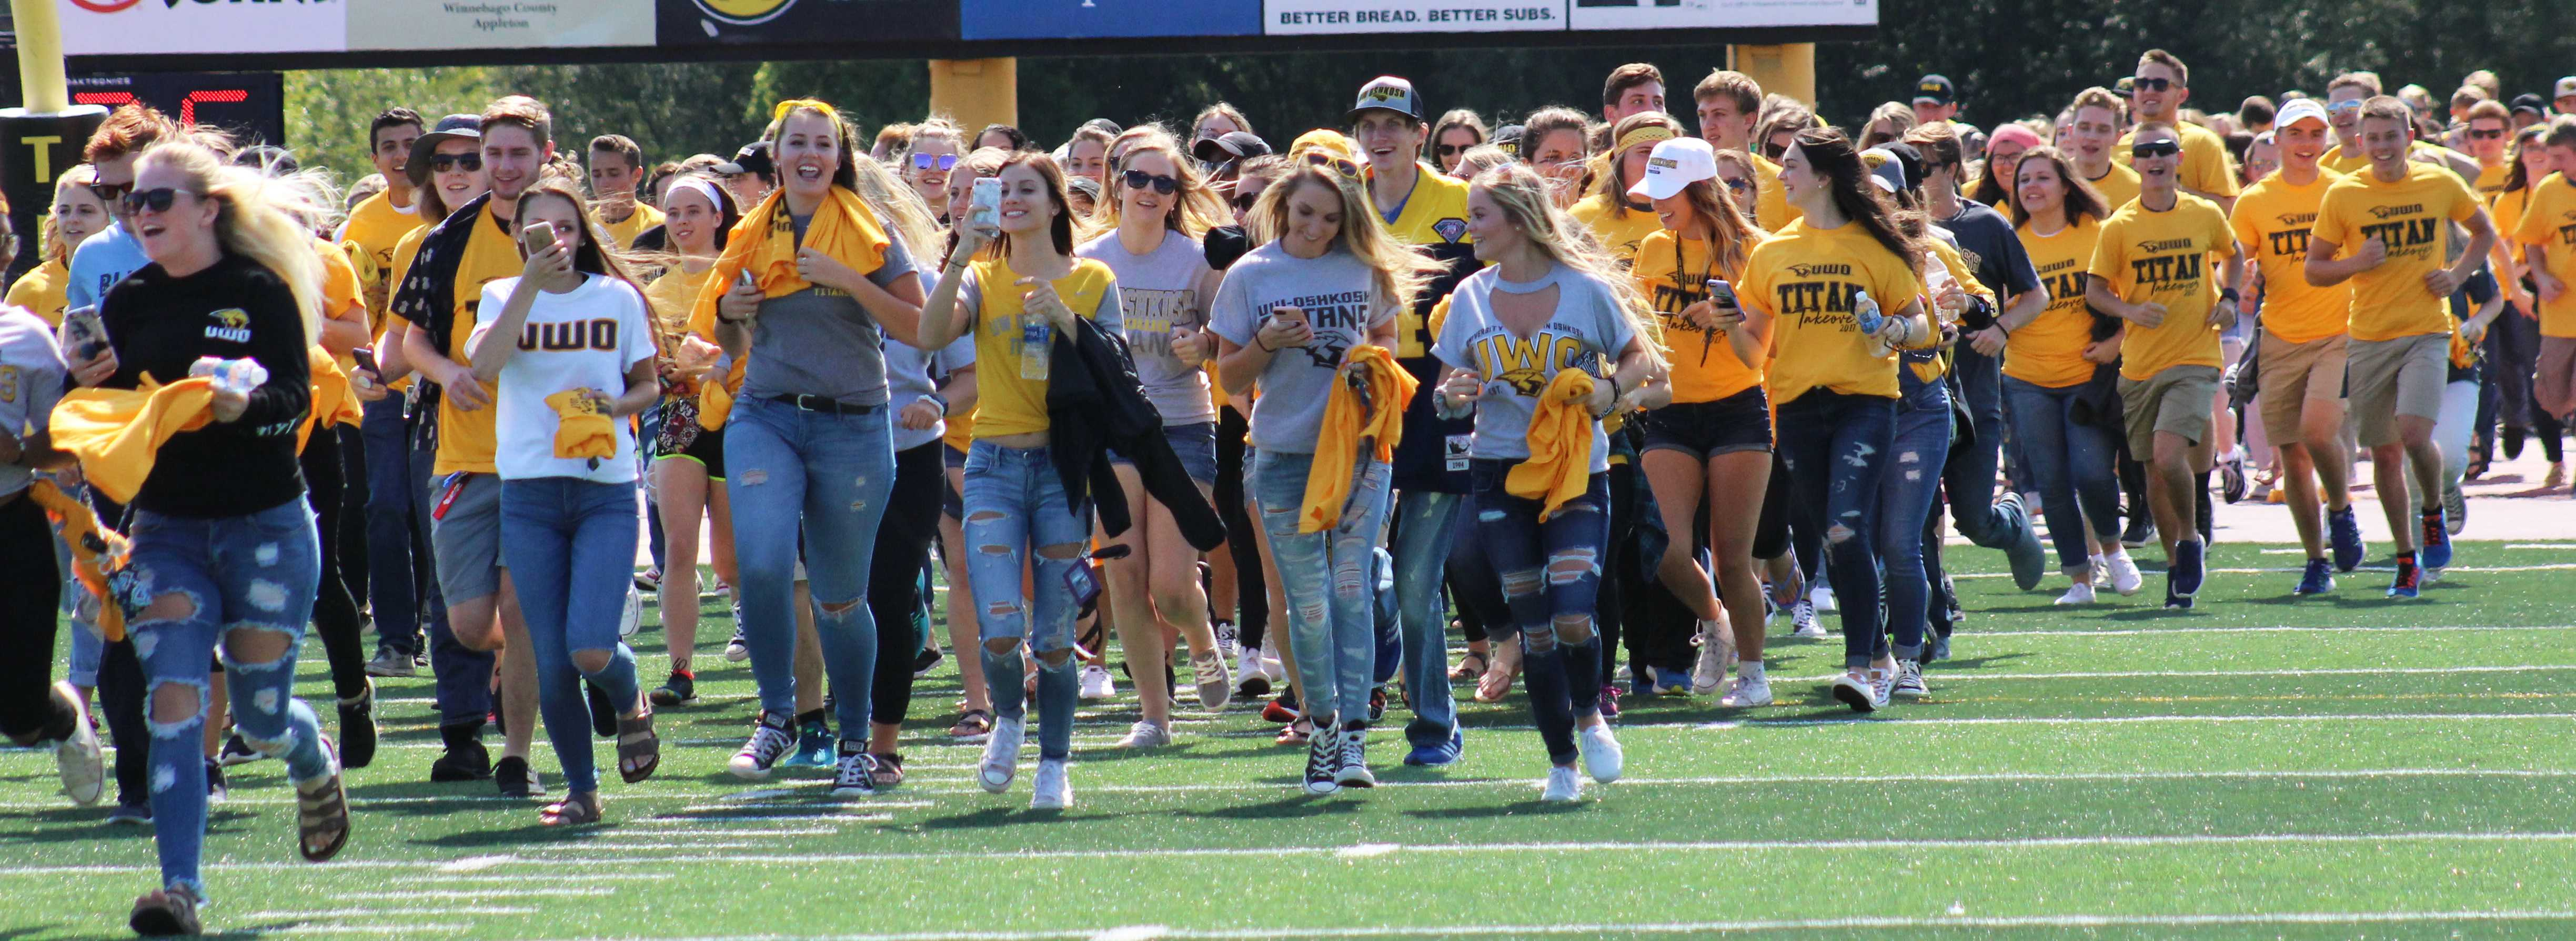 Titan Takeover eases new students into campus life